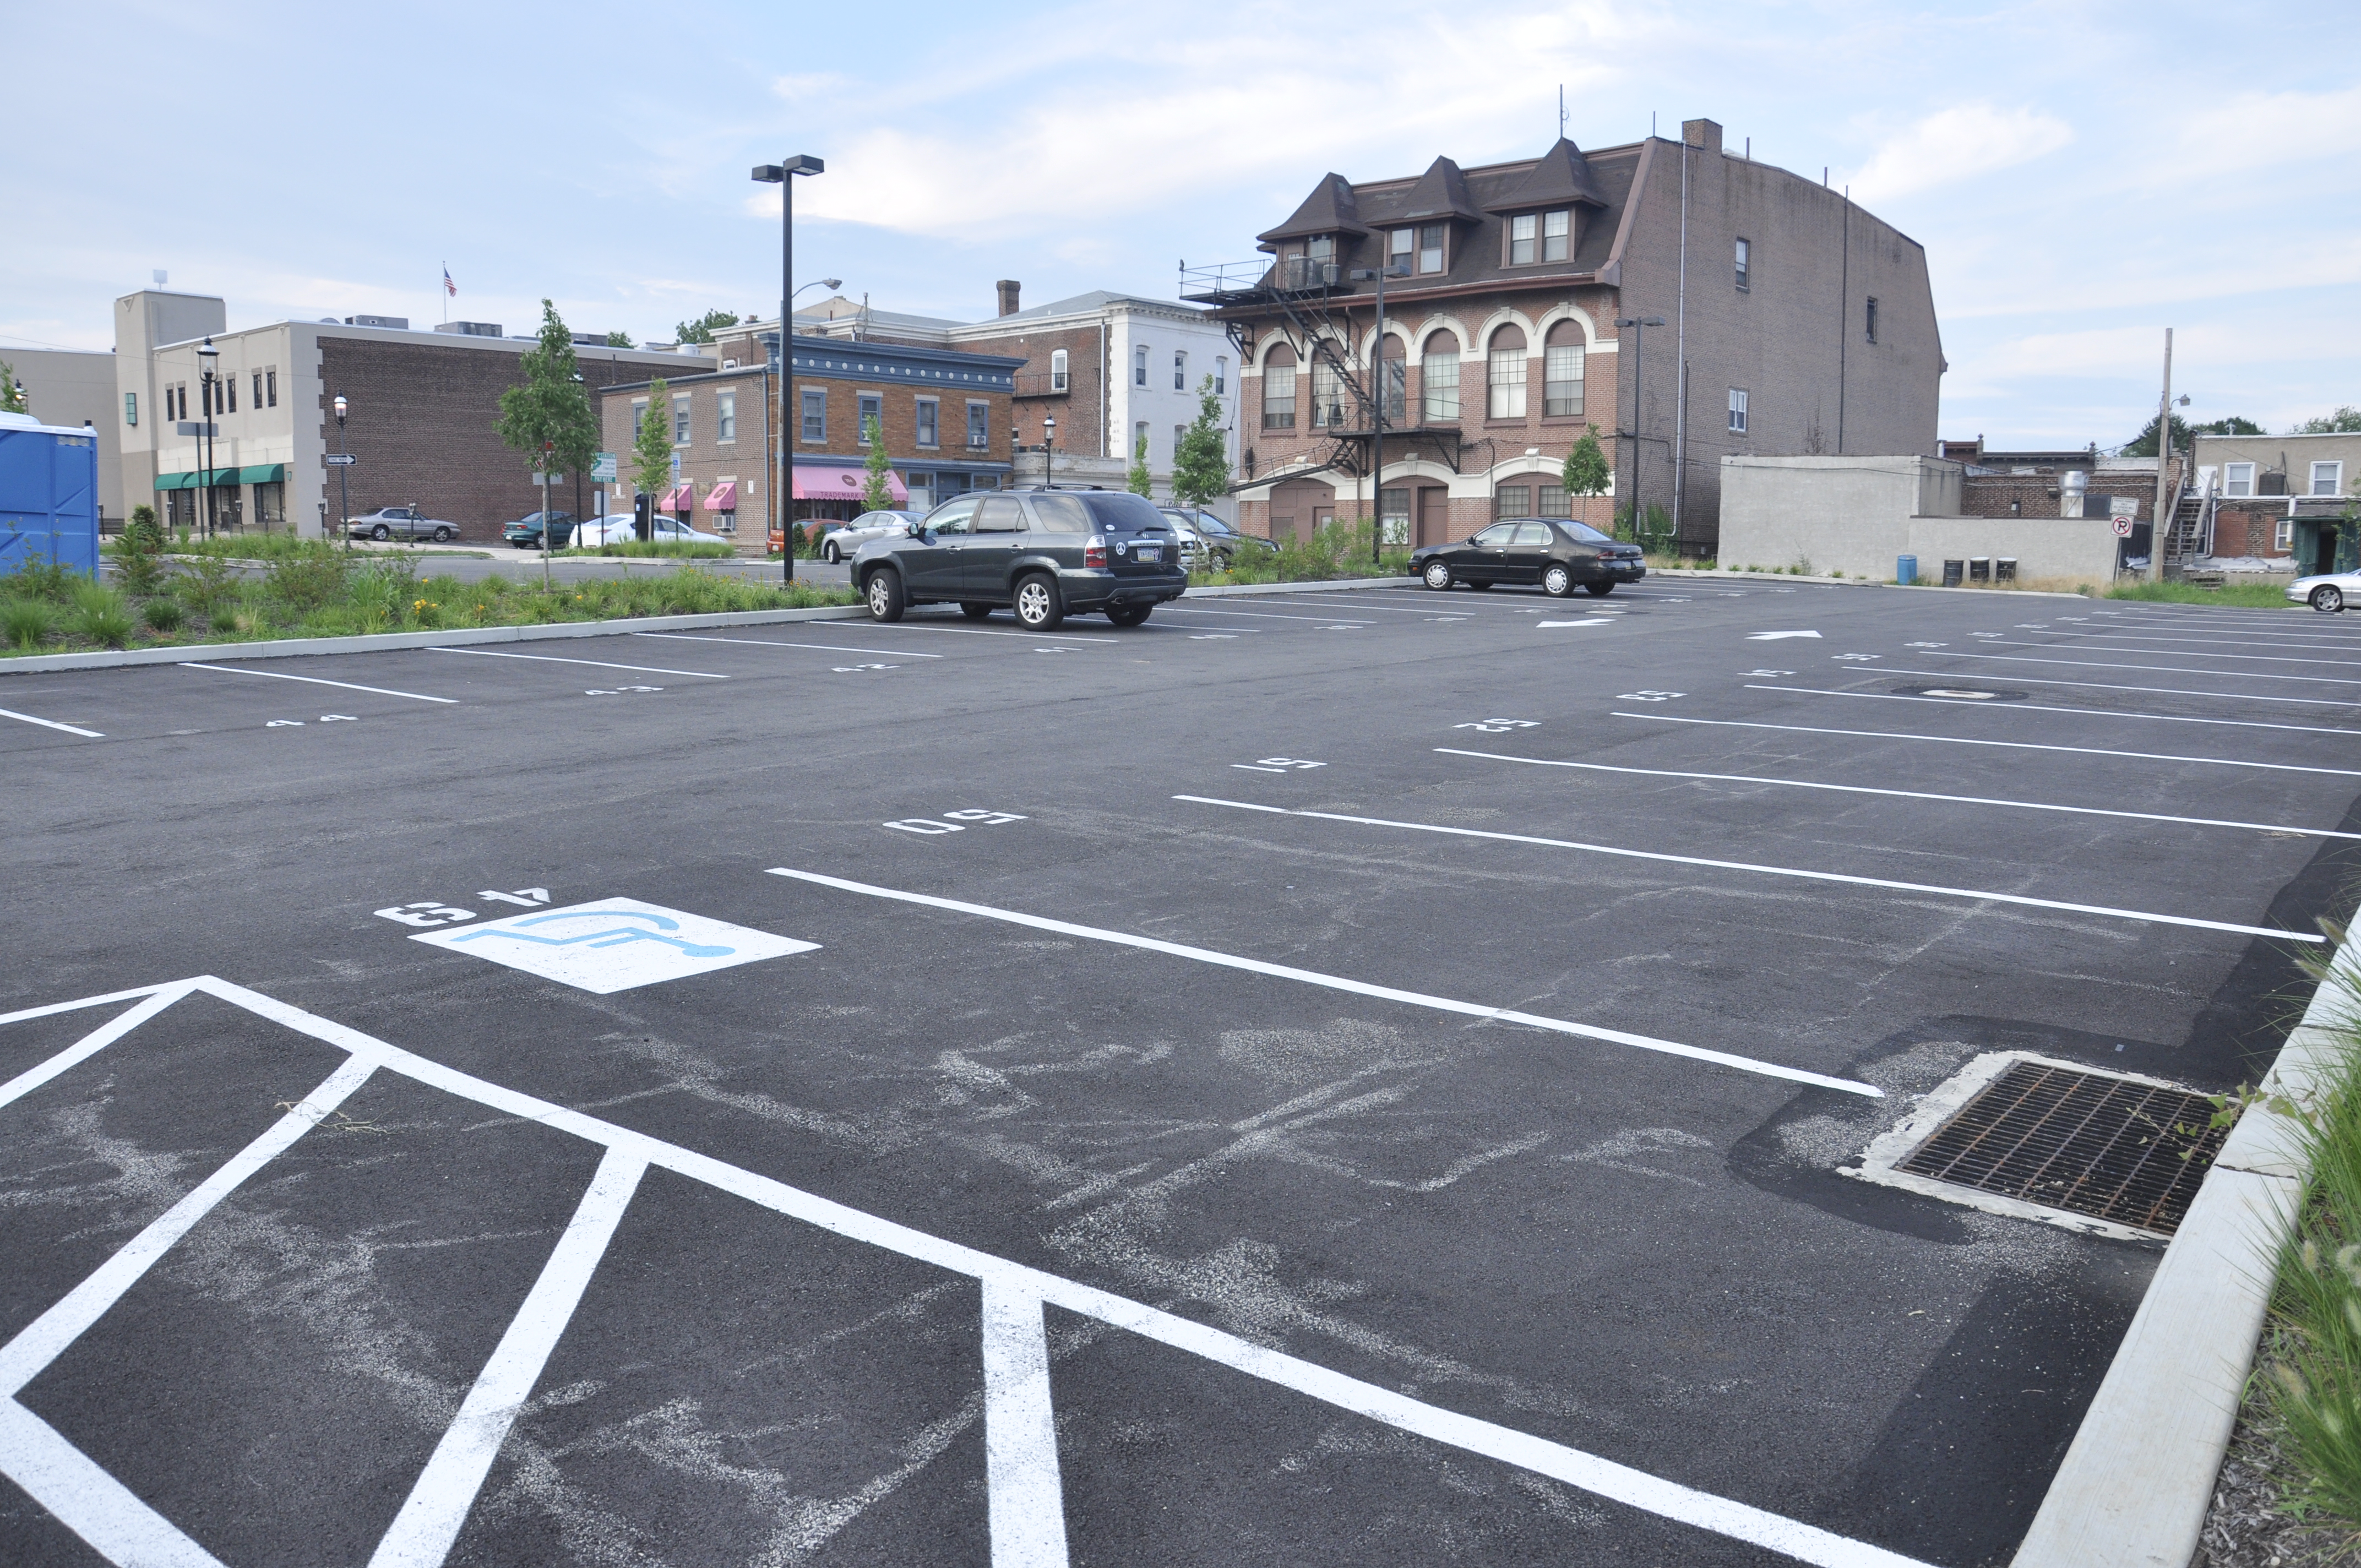 Does Jenkintown Borough need more parking?